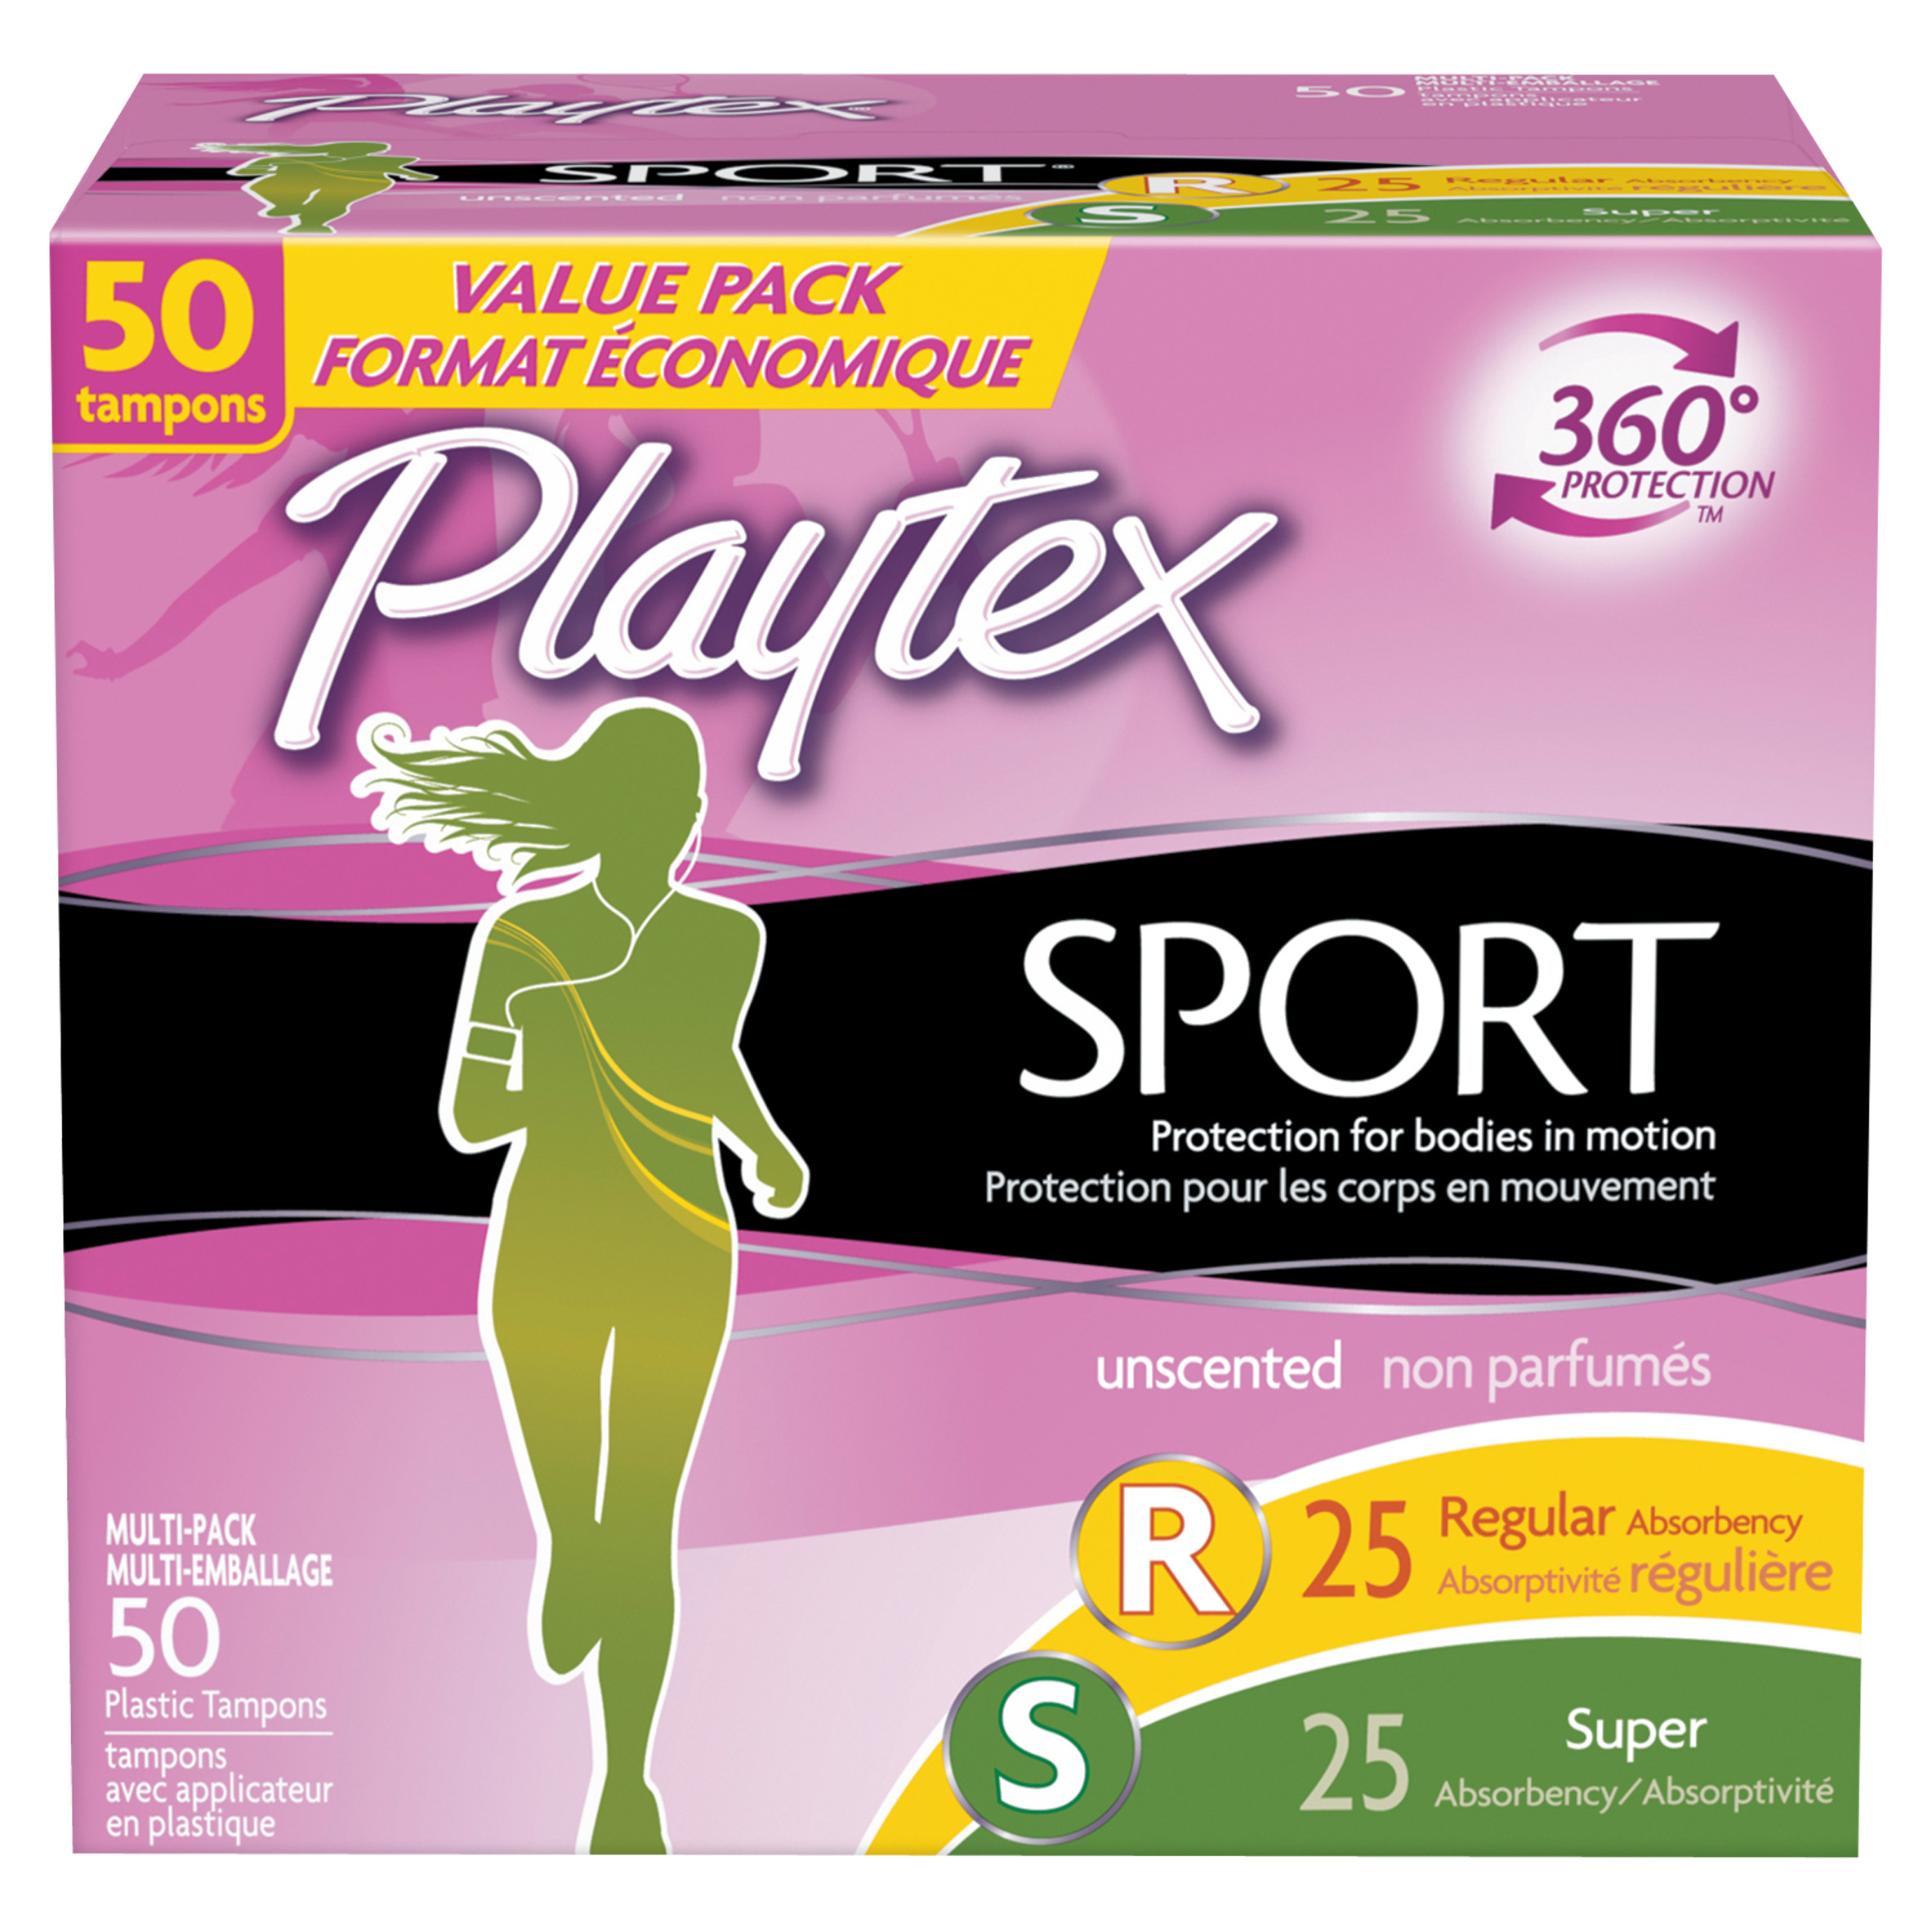 Playtex Sport Tampons Unscented Multi-Pack 25 Regular Absorbency And 25 Super Absorbency - 50 Count